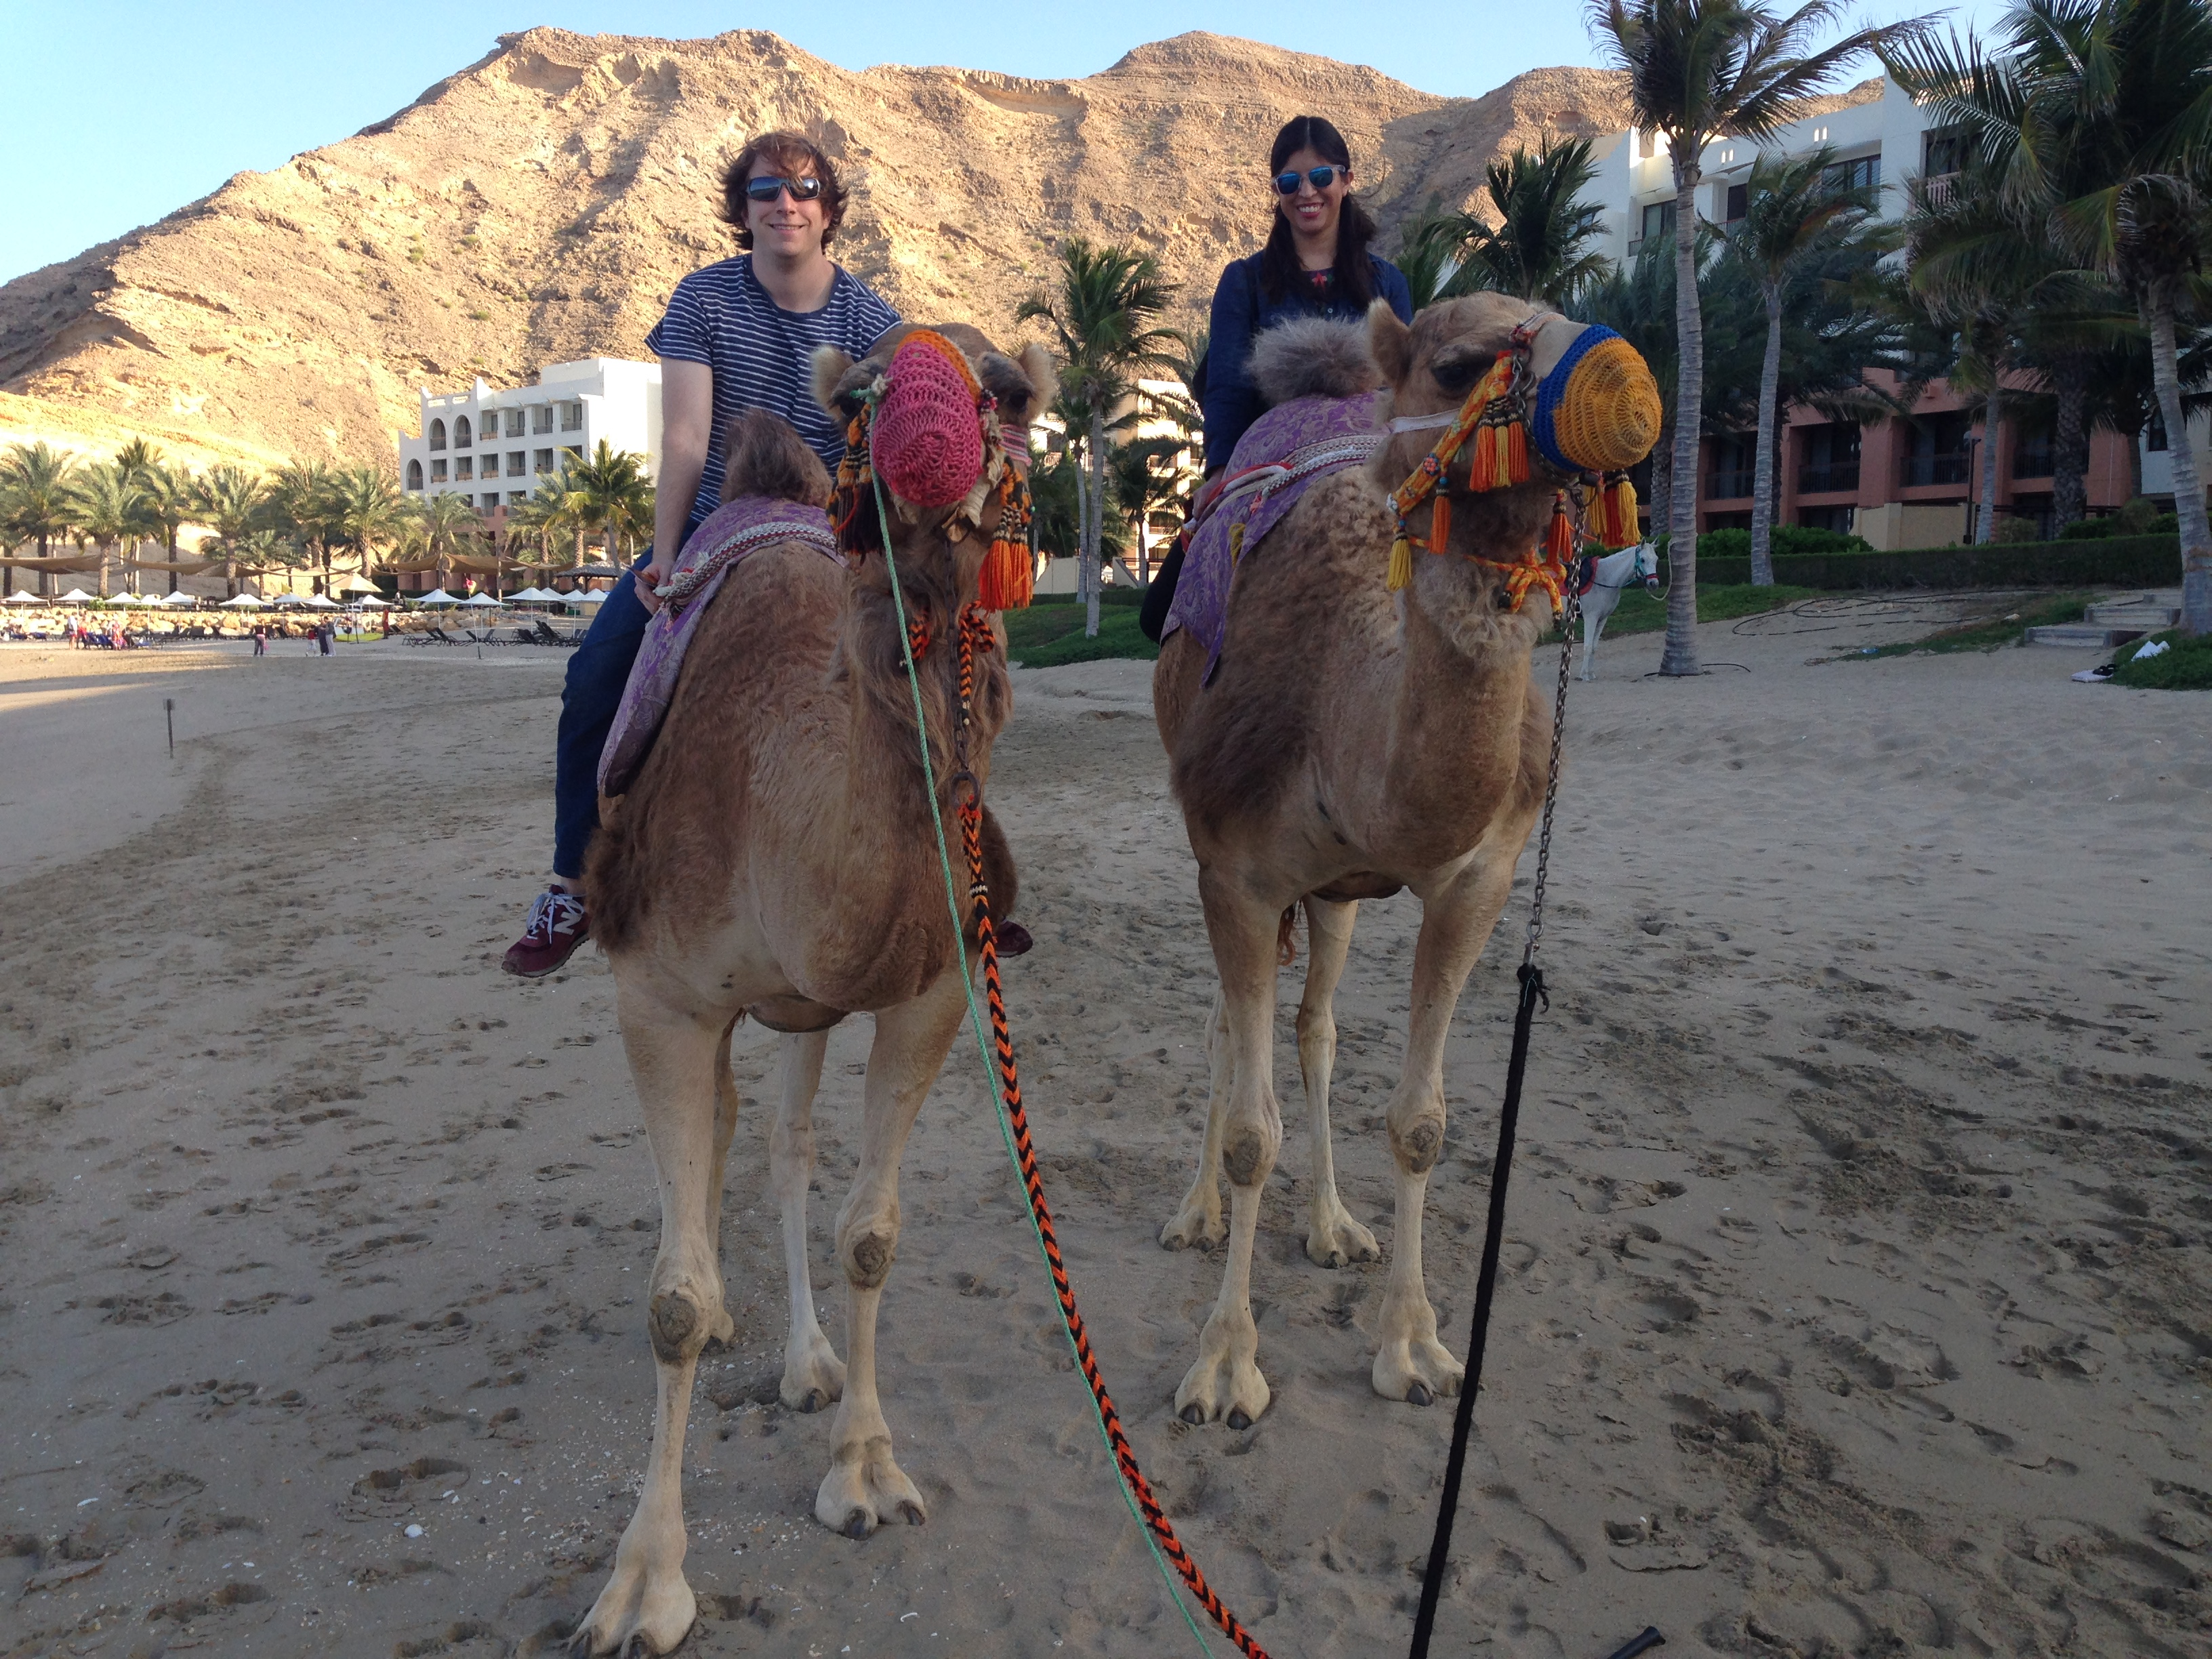 Picture of me on a camel